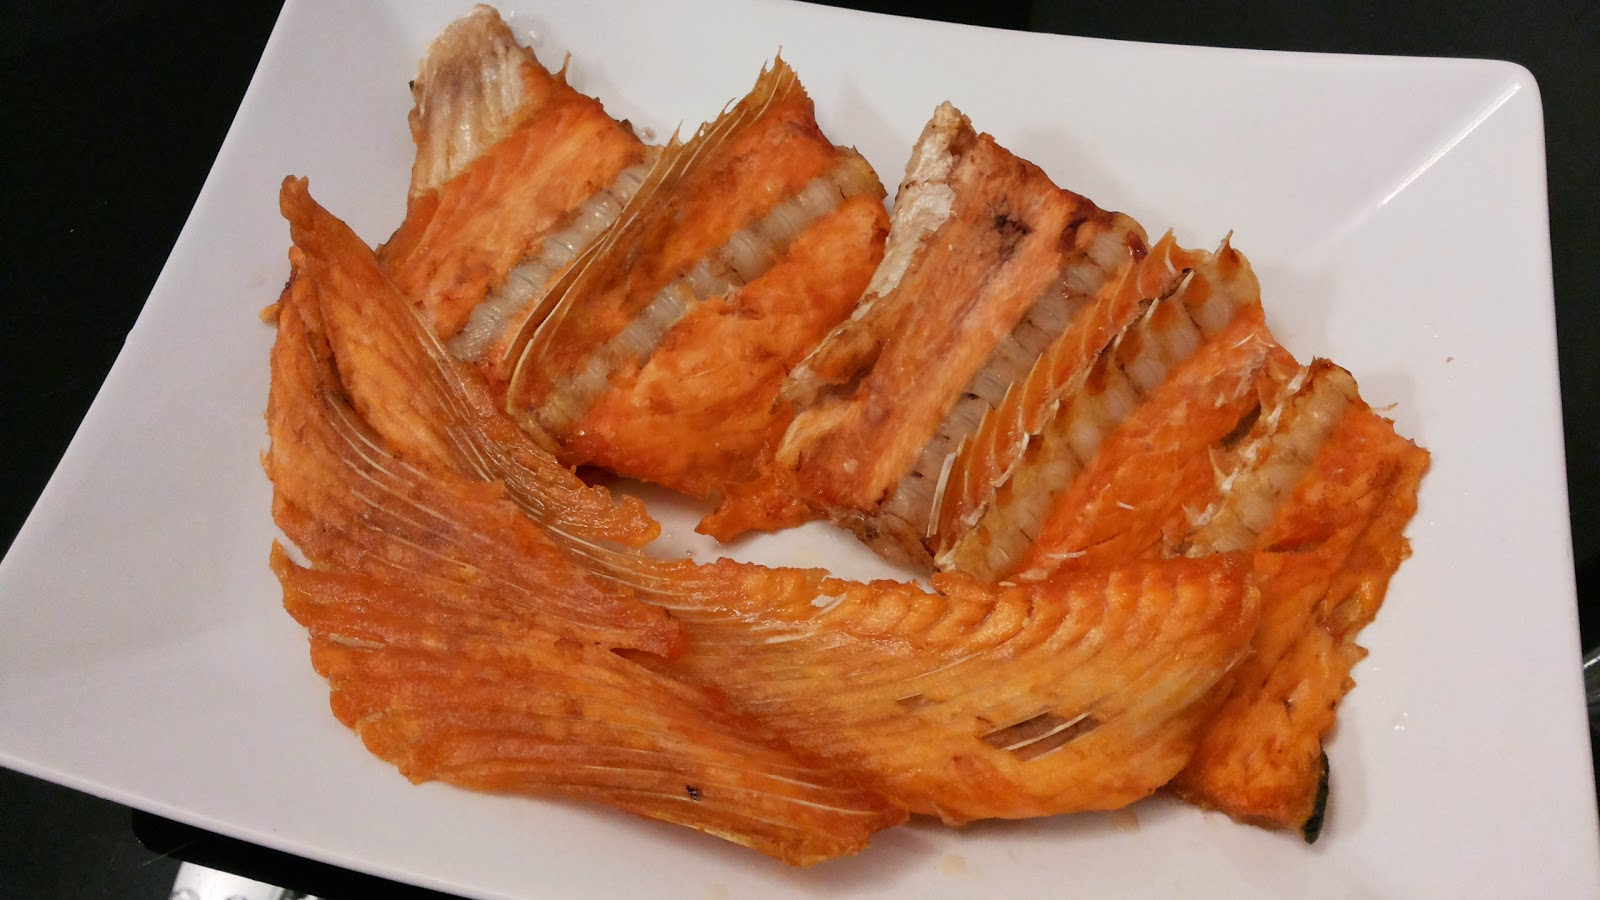 Krystal wee recipes salmon fish bones recipe for How to cook buffalo fish